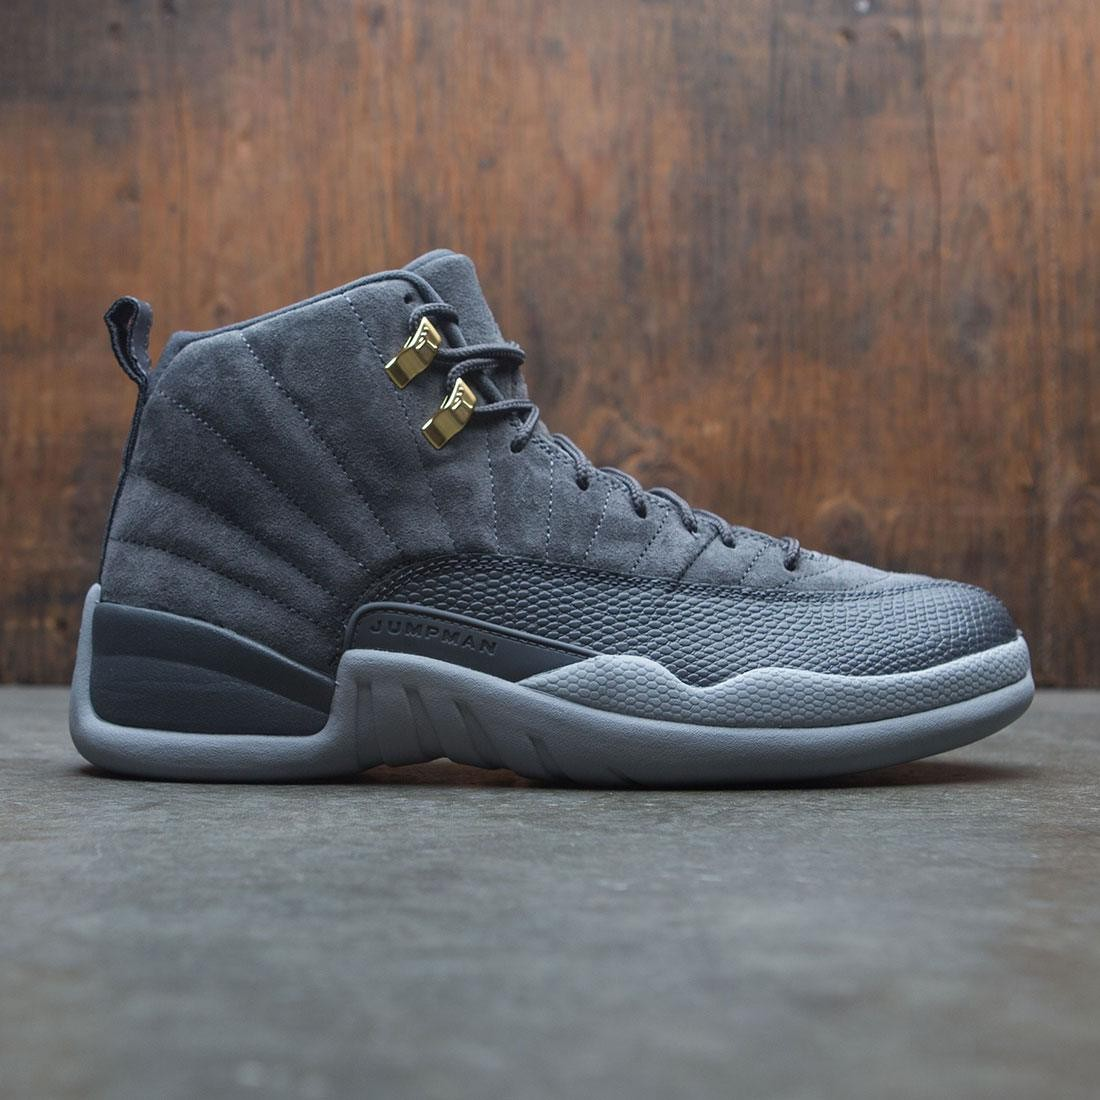 71a827087664 jordan men air jordan 12 retro dark grey dark grey wolf grey